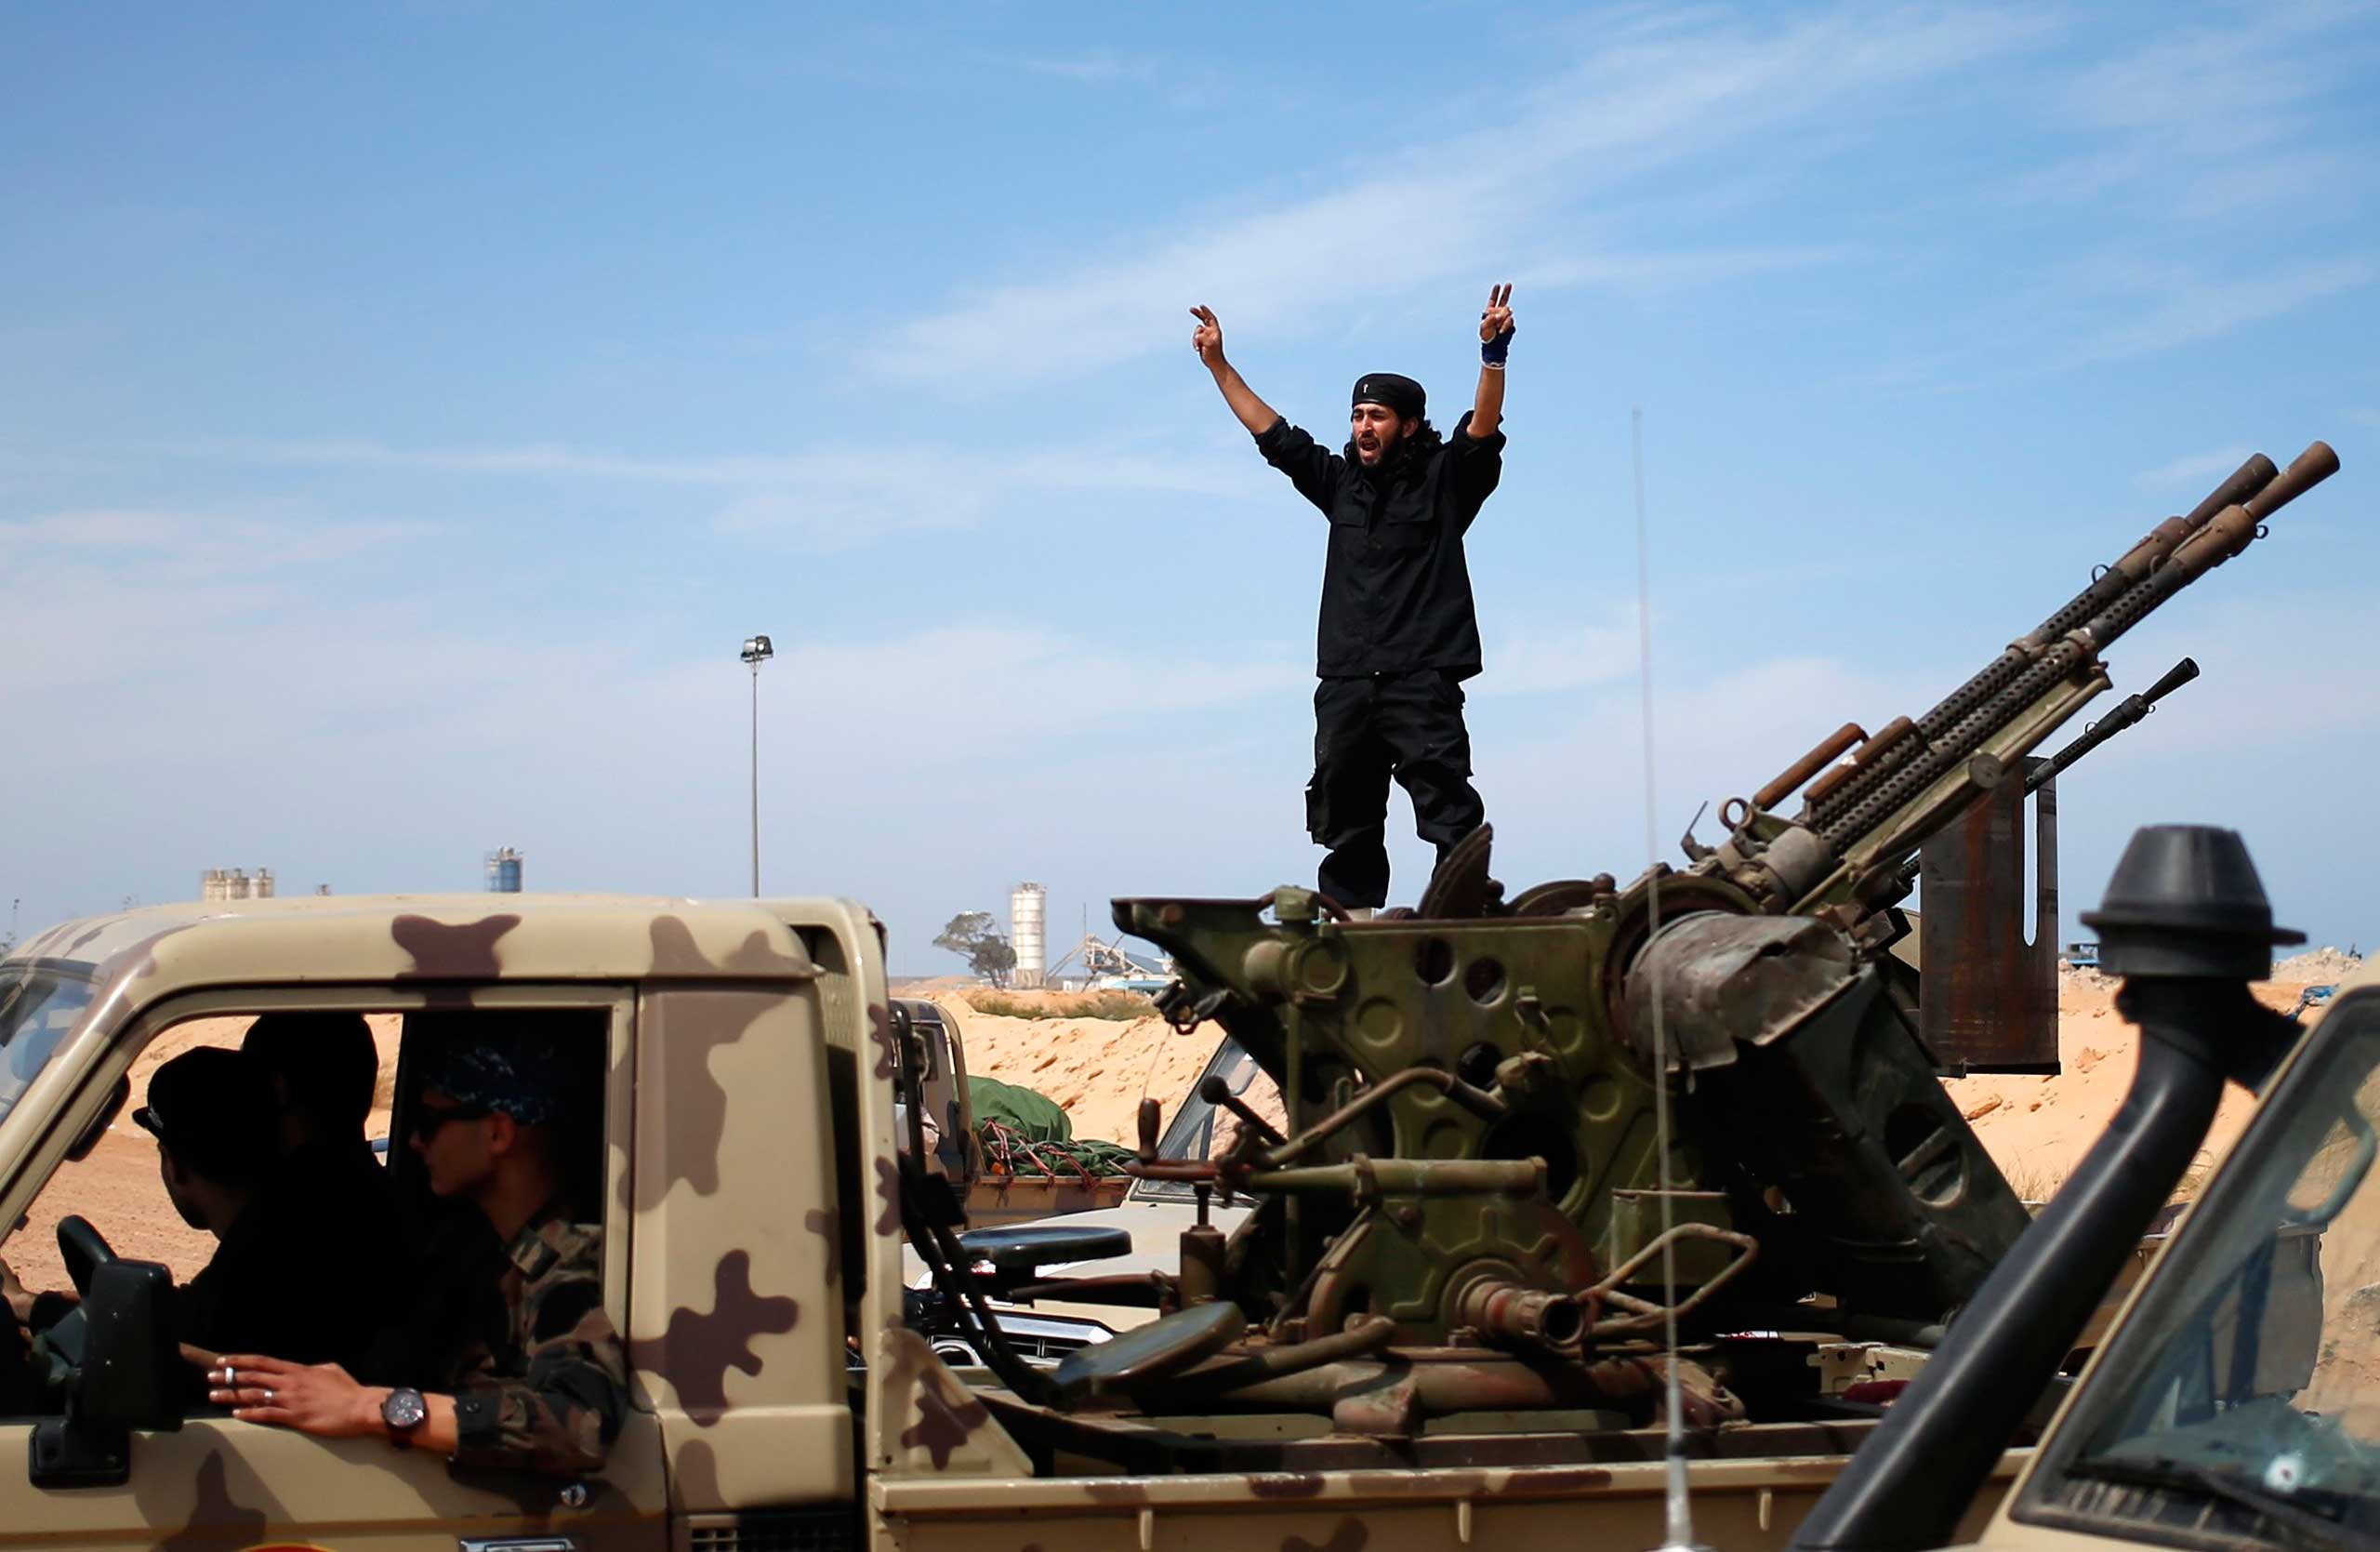 A fighter from Misrata shouts to his comrades as they move to fight ISIS militants near Sirte March 15, 2015.